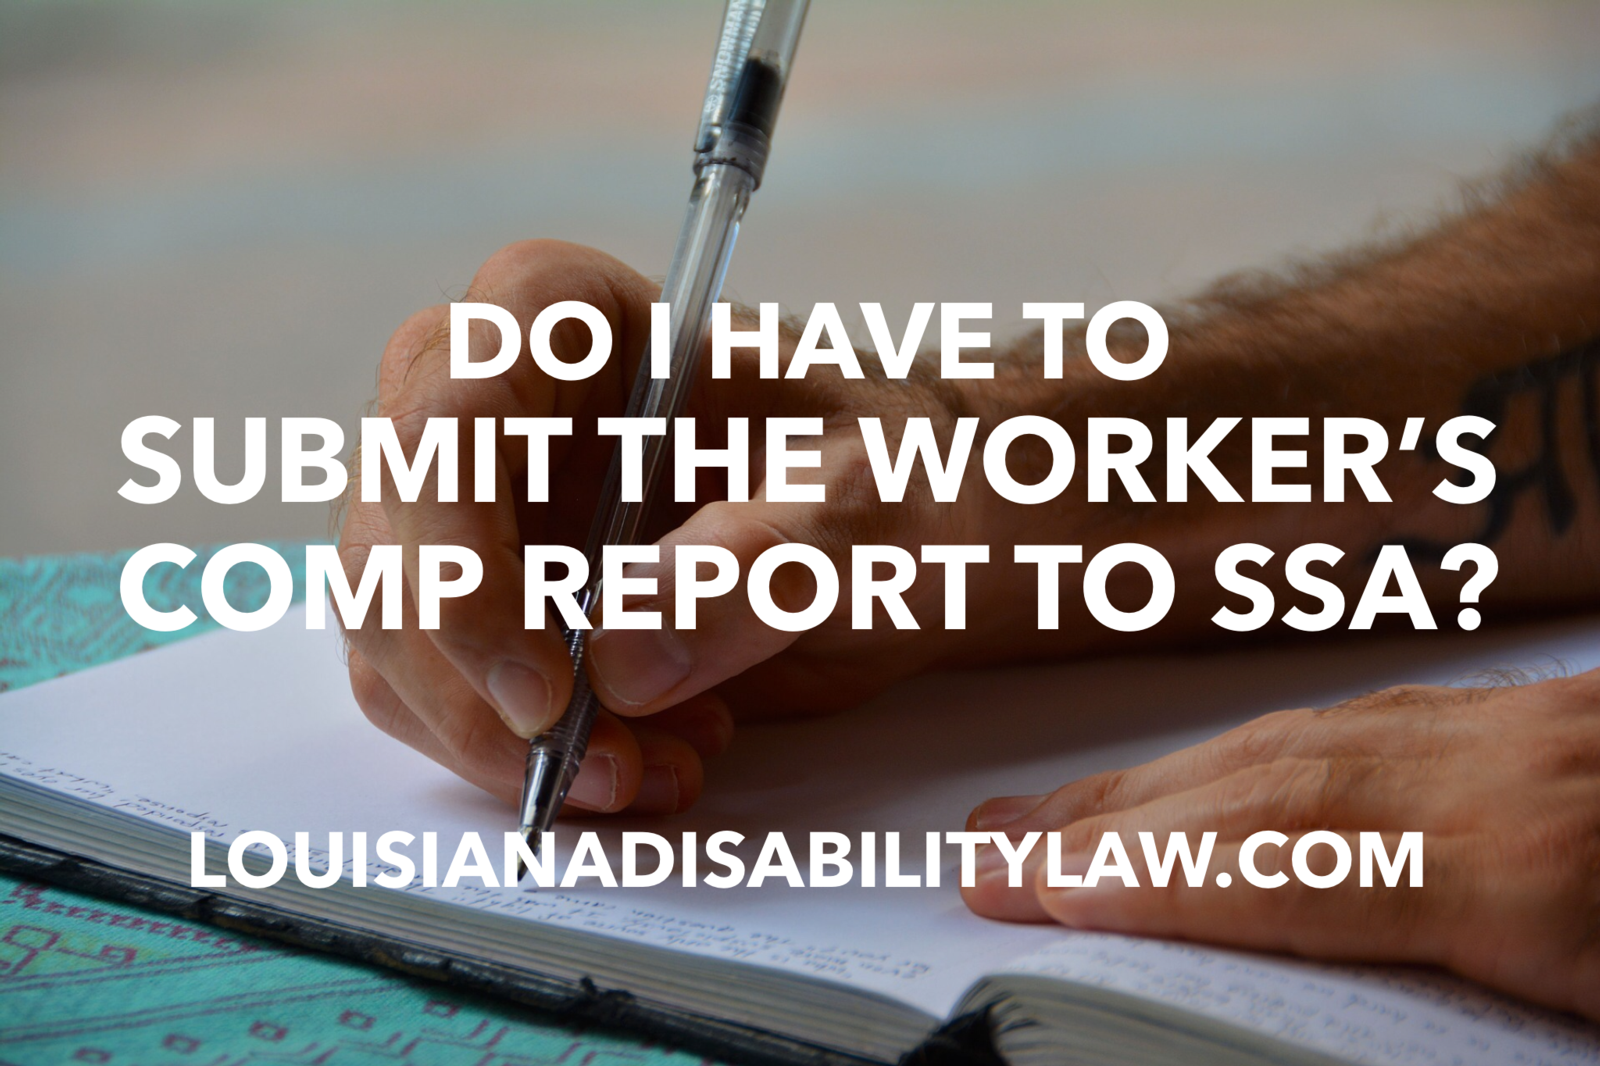 Do I have to submit the Worker's Comp report to the SSA?